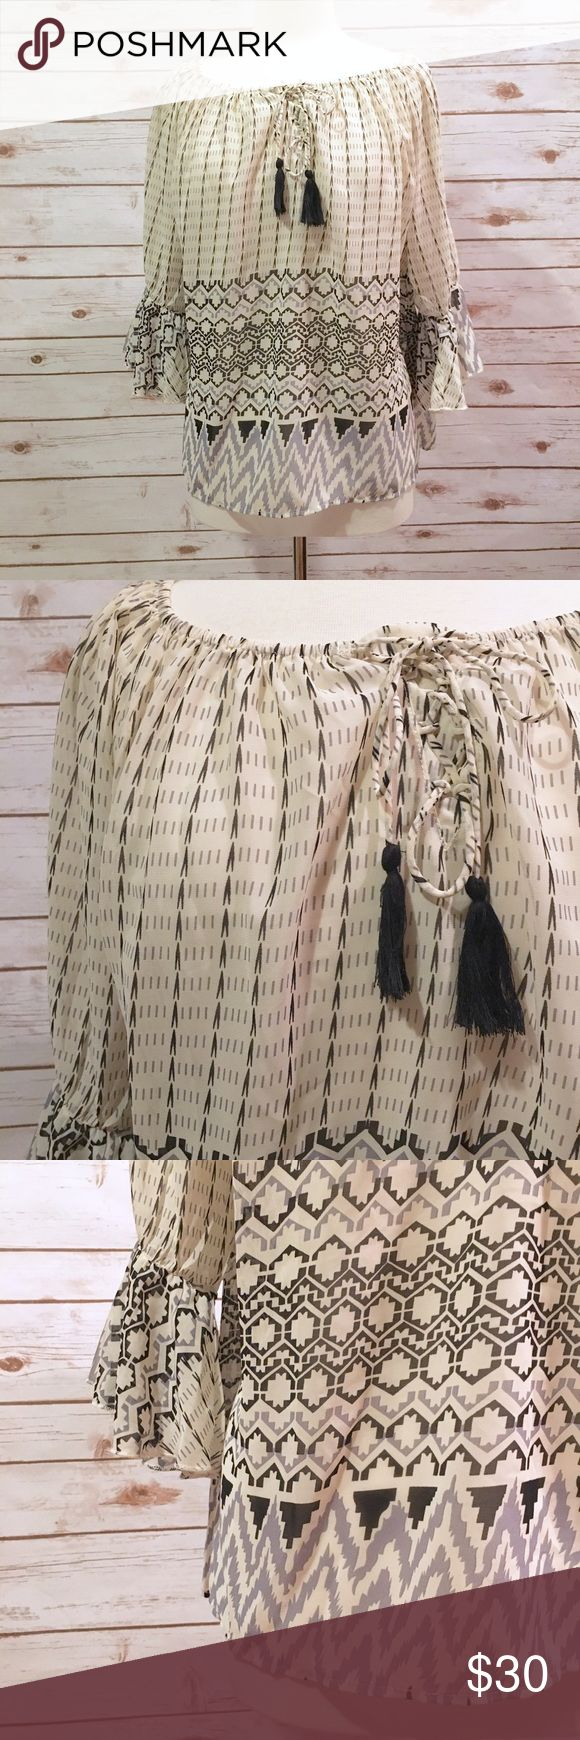 """NWT Umgee Ivory Printed Bohemian Blouse Chic bohemian blouse by Umgee. ▪️25"""" long ▪️26"""" pit to pit ▪️16"""" arm length ▪️NWT from boutique ▪️In great condition   🚭 Smoke-free home 📬 Ships by next day 💲 Price negotiable  🔁 Open to trades  💟Happy Poshing!💟 Umgee Tops"""